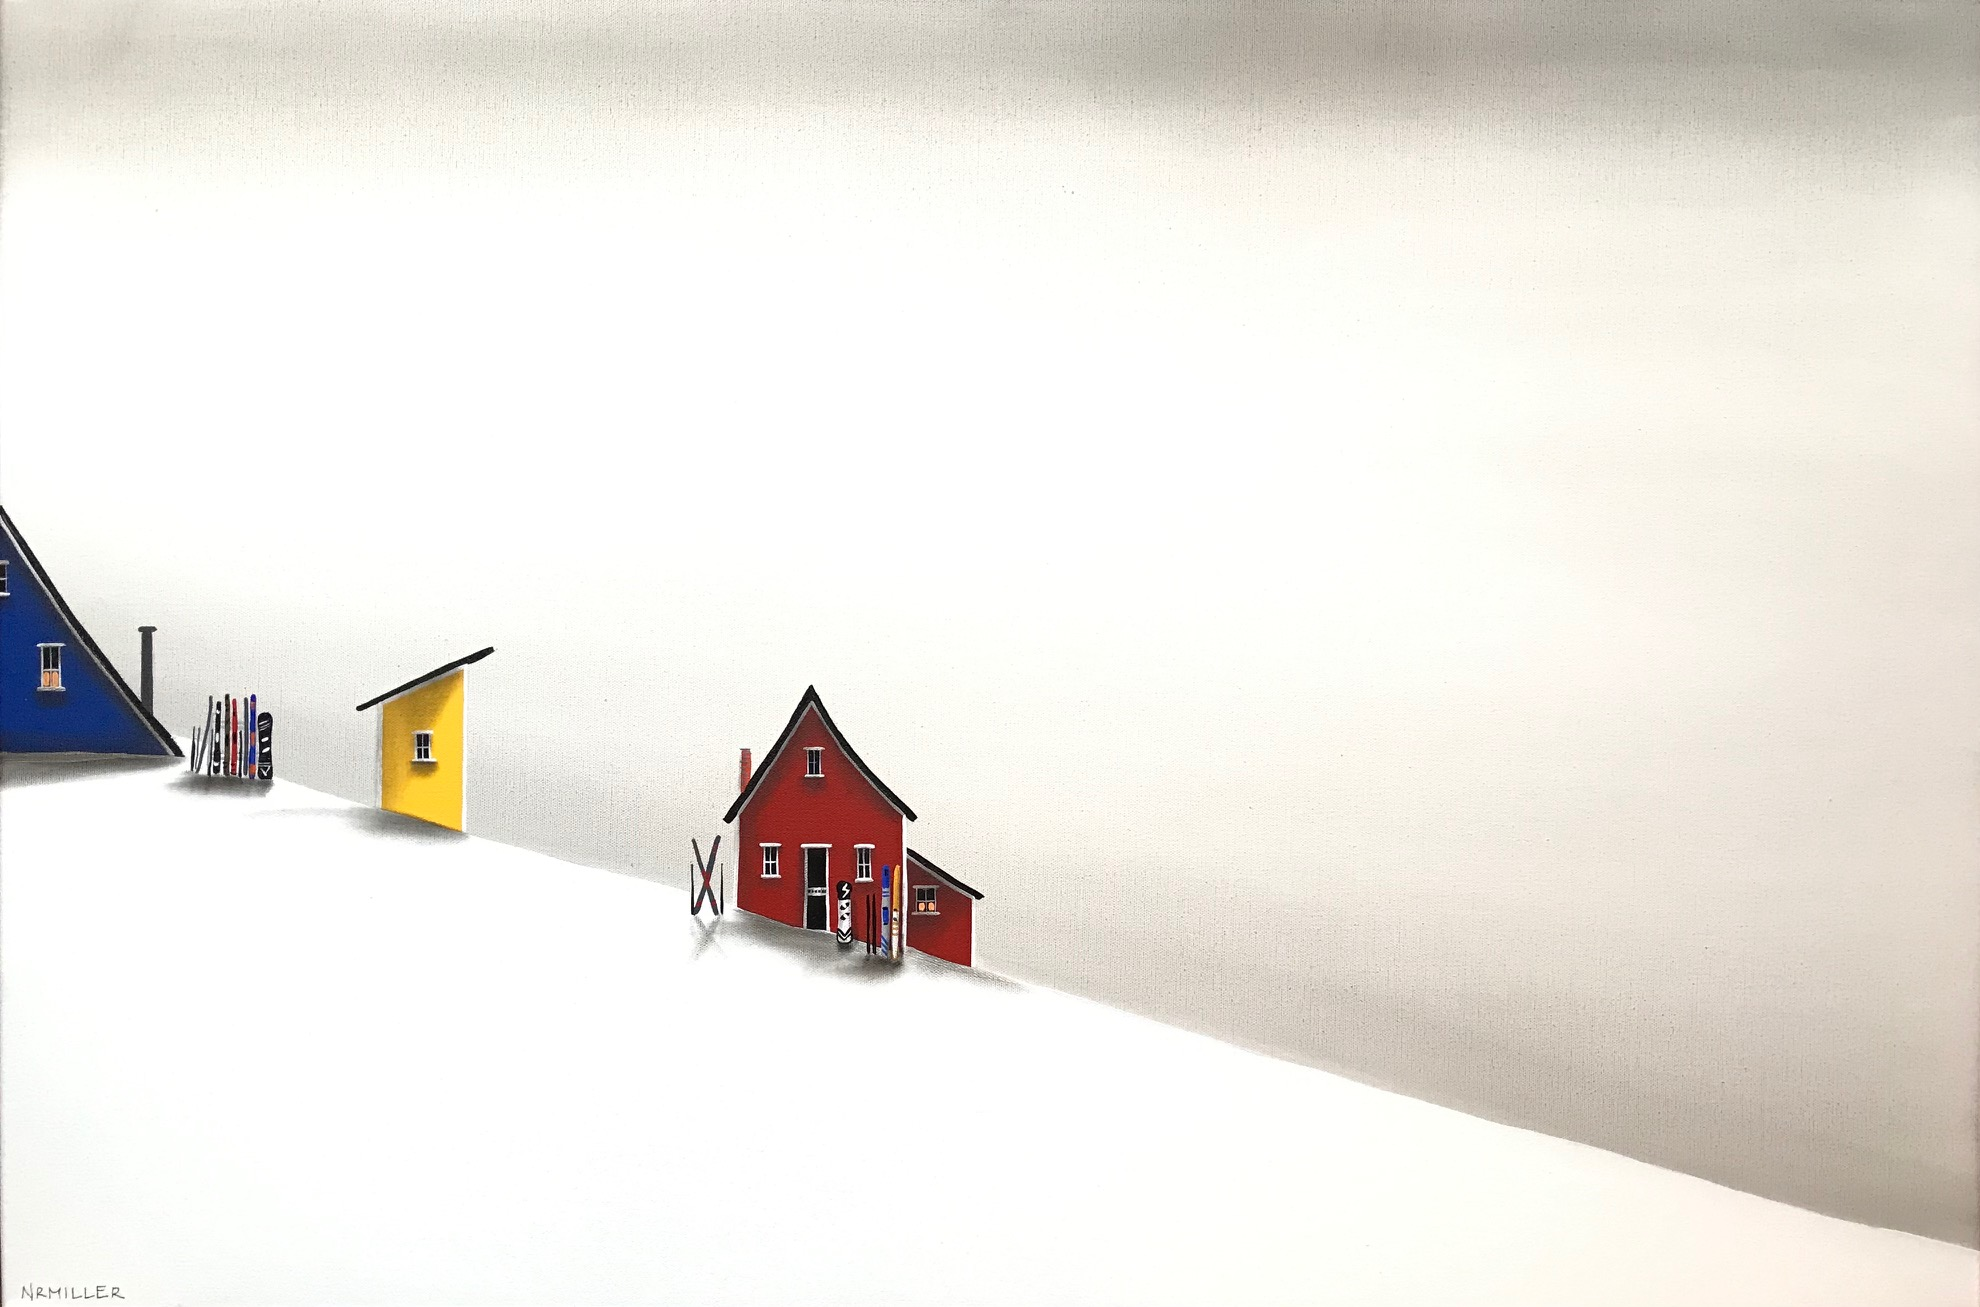 Snowy Days, mixed media landscape painting by Natasha Miller | Effusion Art Gallery + Cast Glass Studio, Invermere BC